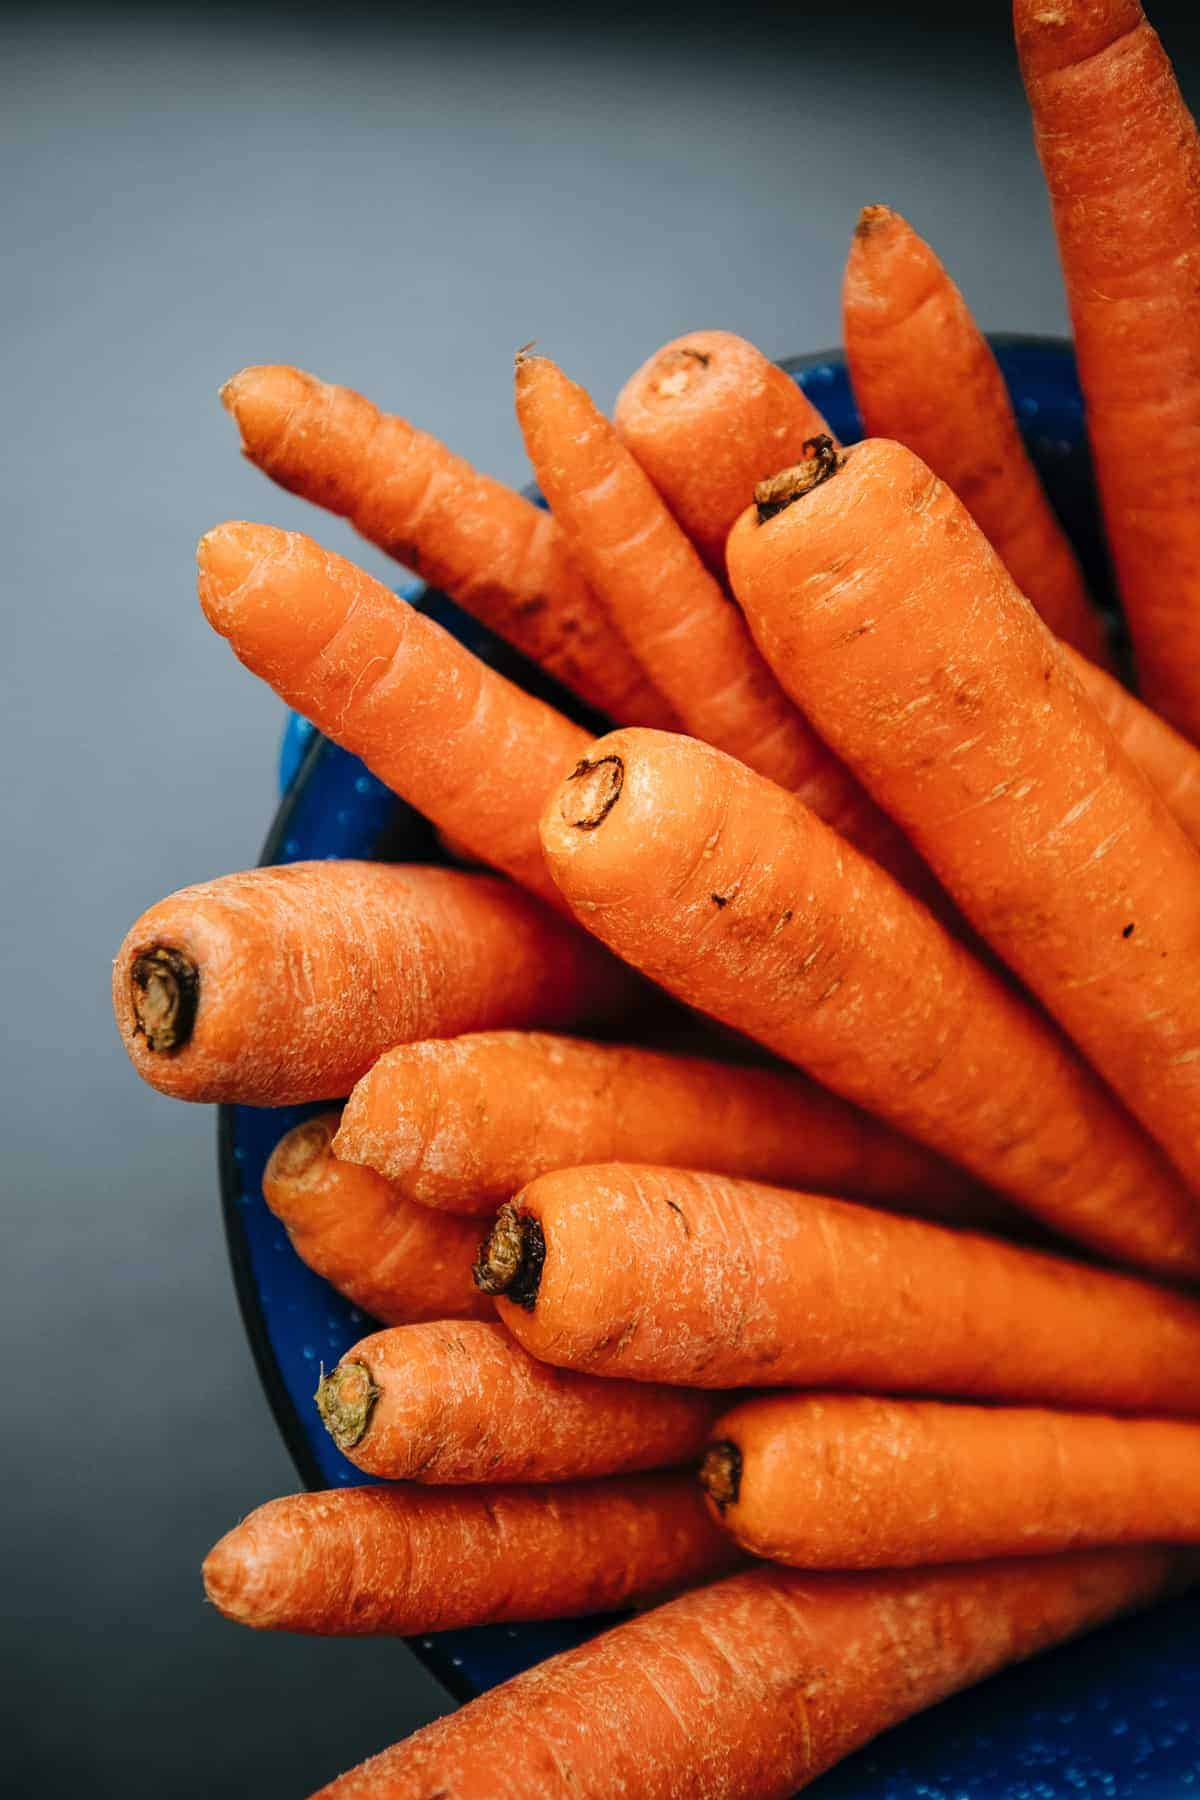 A bunch of carrots.